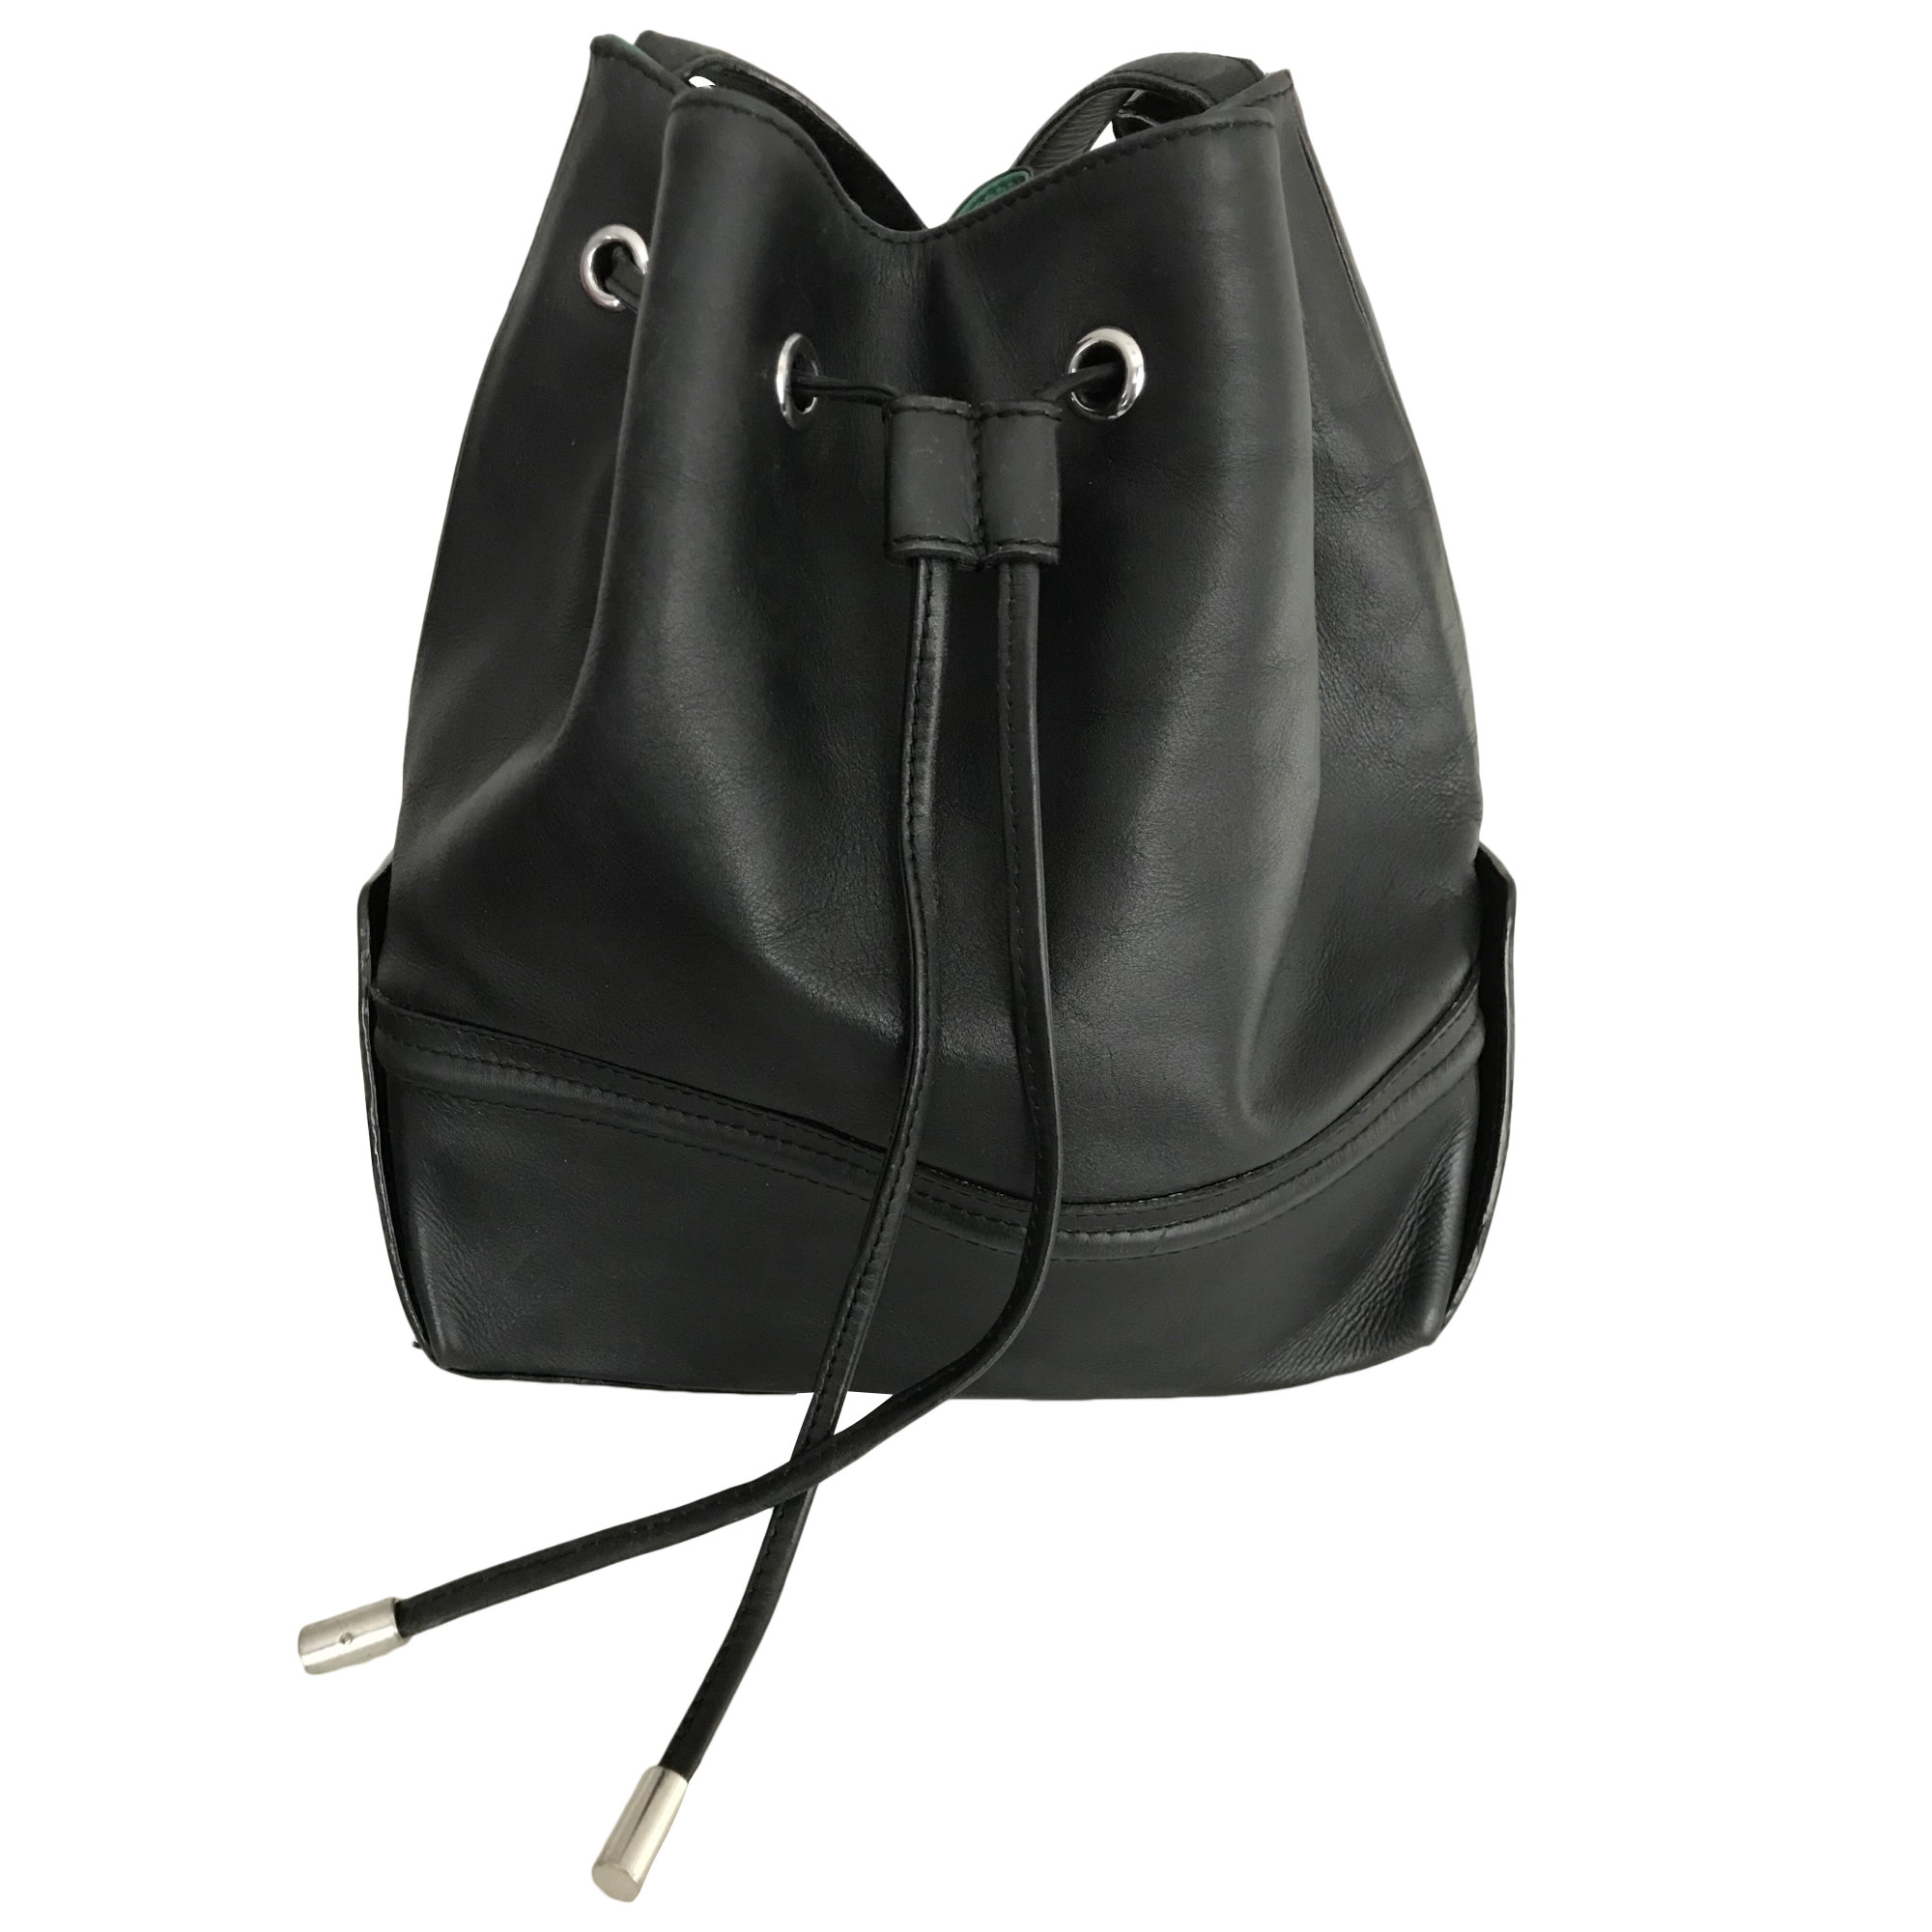 Leather Shoulder Bag CLAUDIE PIERLOT Black